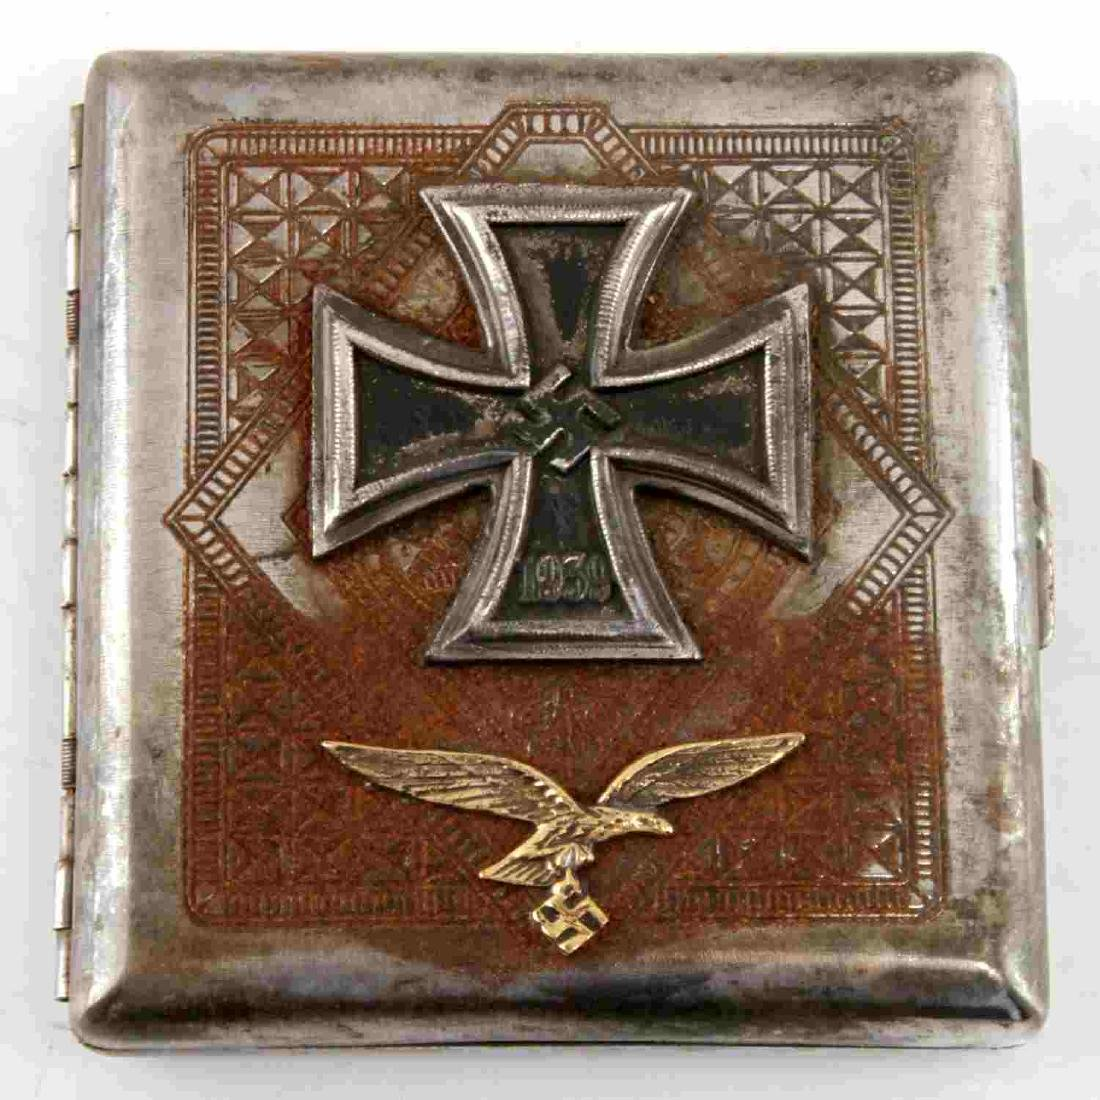 WWII GERMAN LUFTWAFFE IRON CROSS CIGARETTE CASE